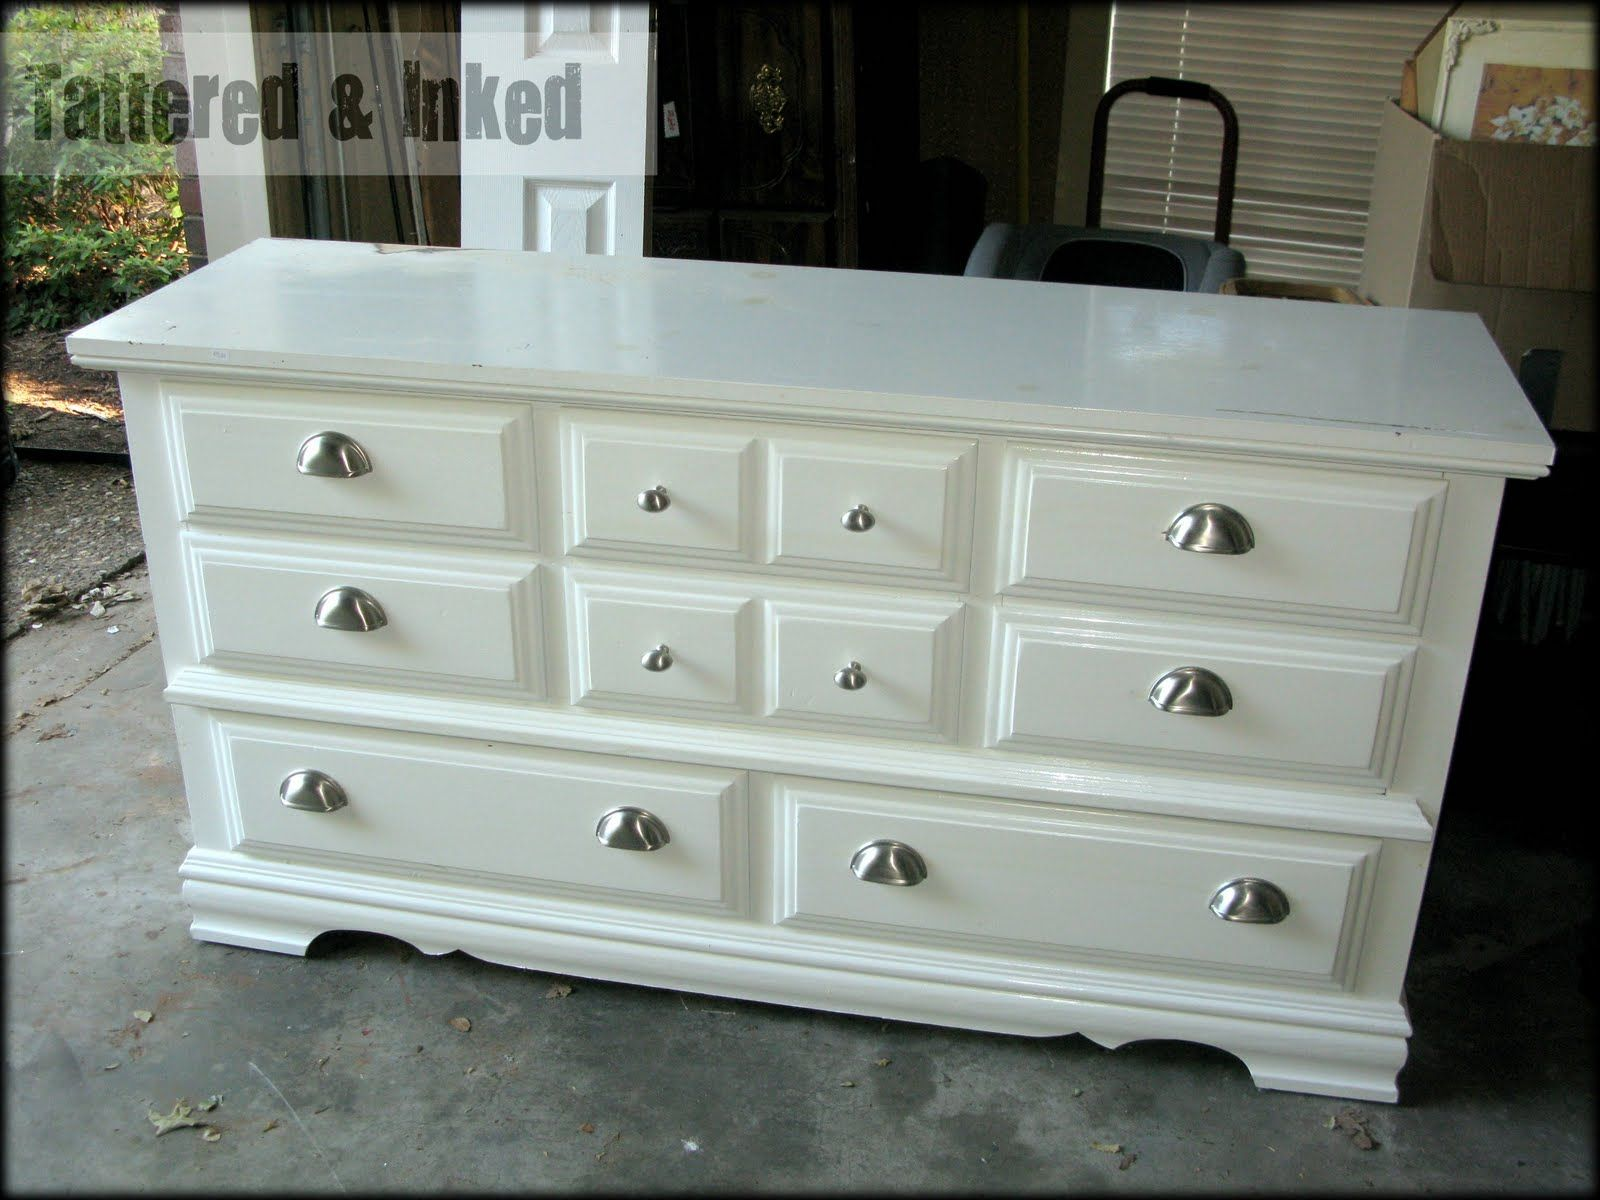 Best Tattered And Inked Black White Distressed Dresser Up 640 x 480